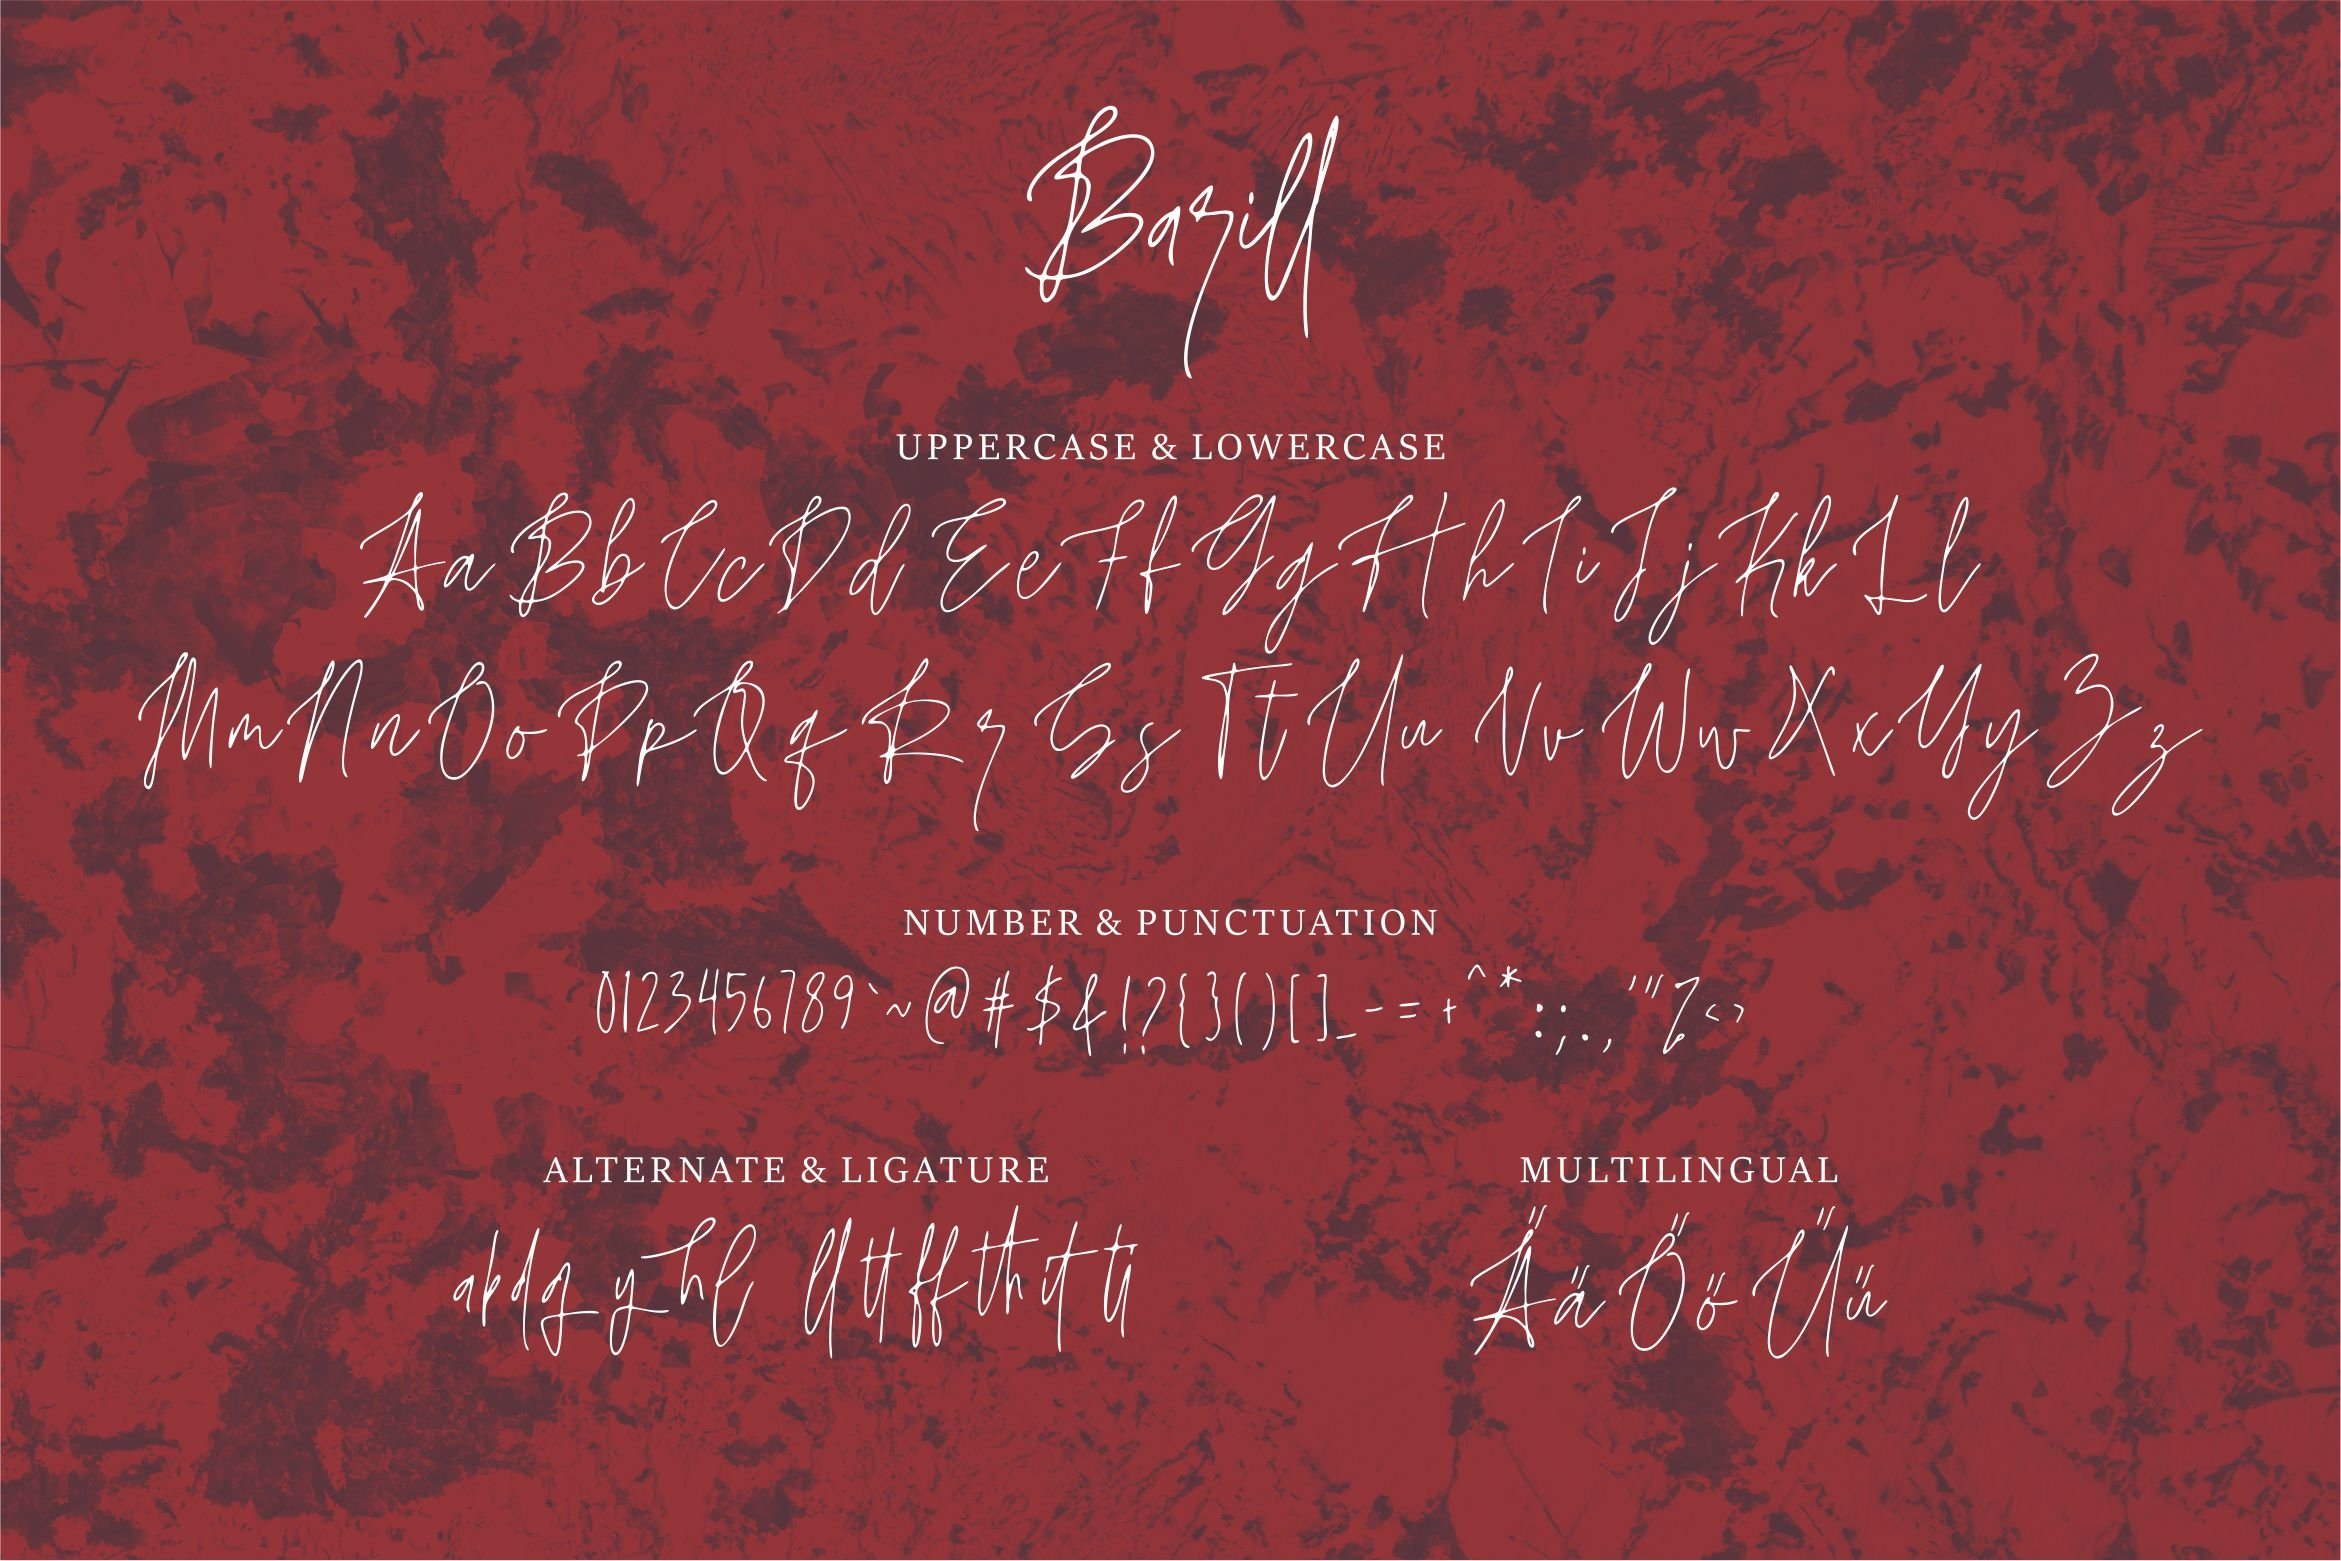 Barill - A Handwritten Font example image 5